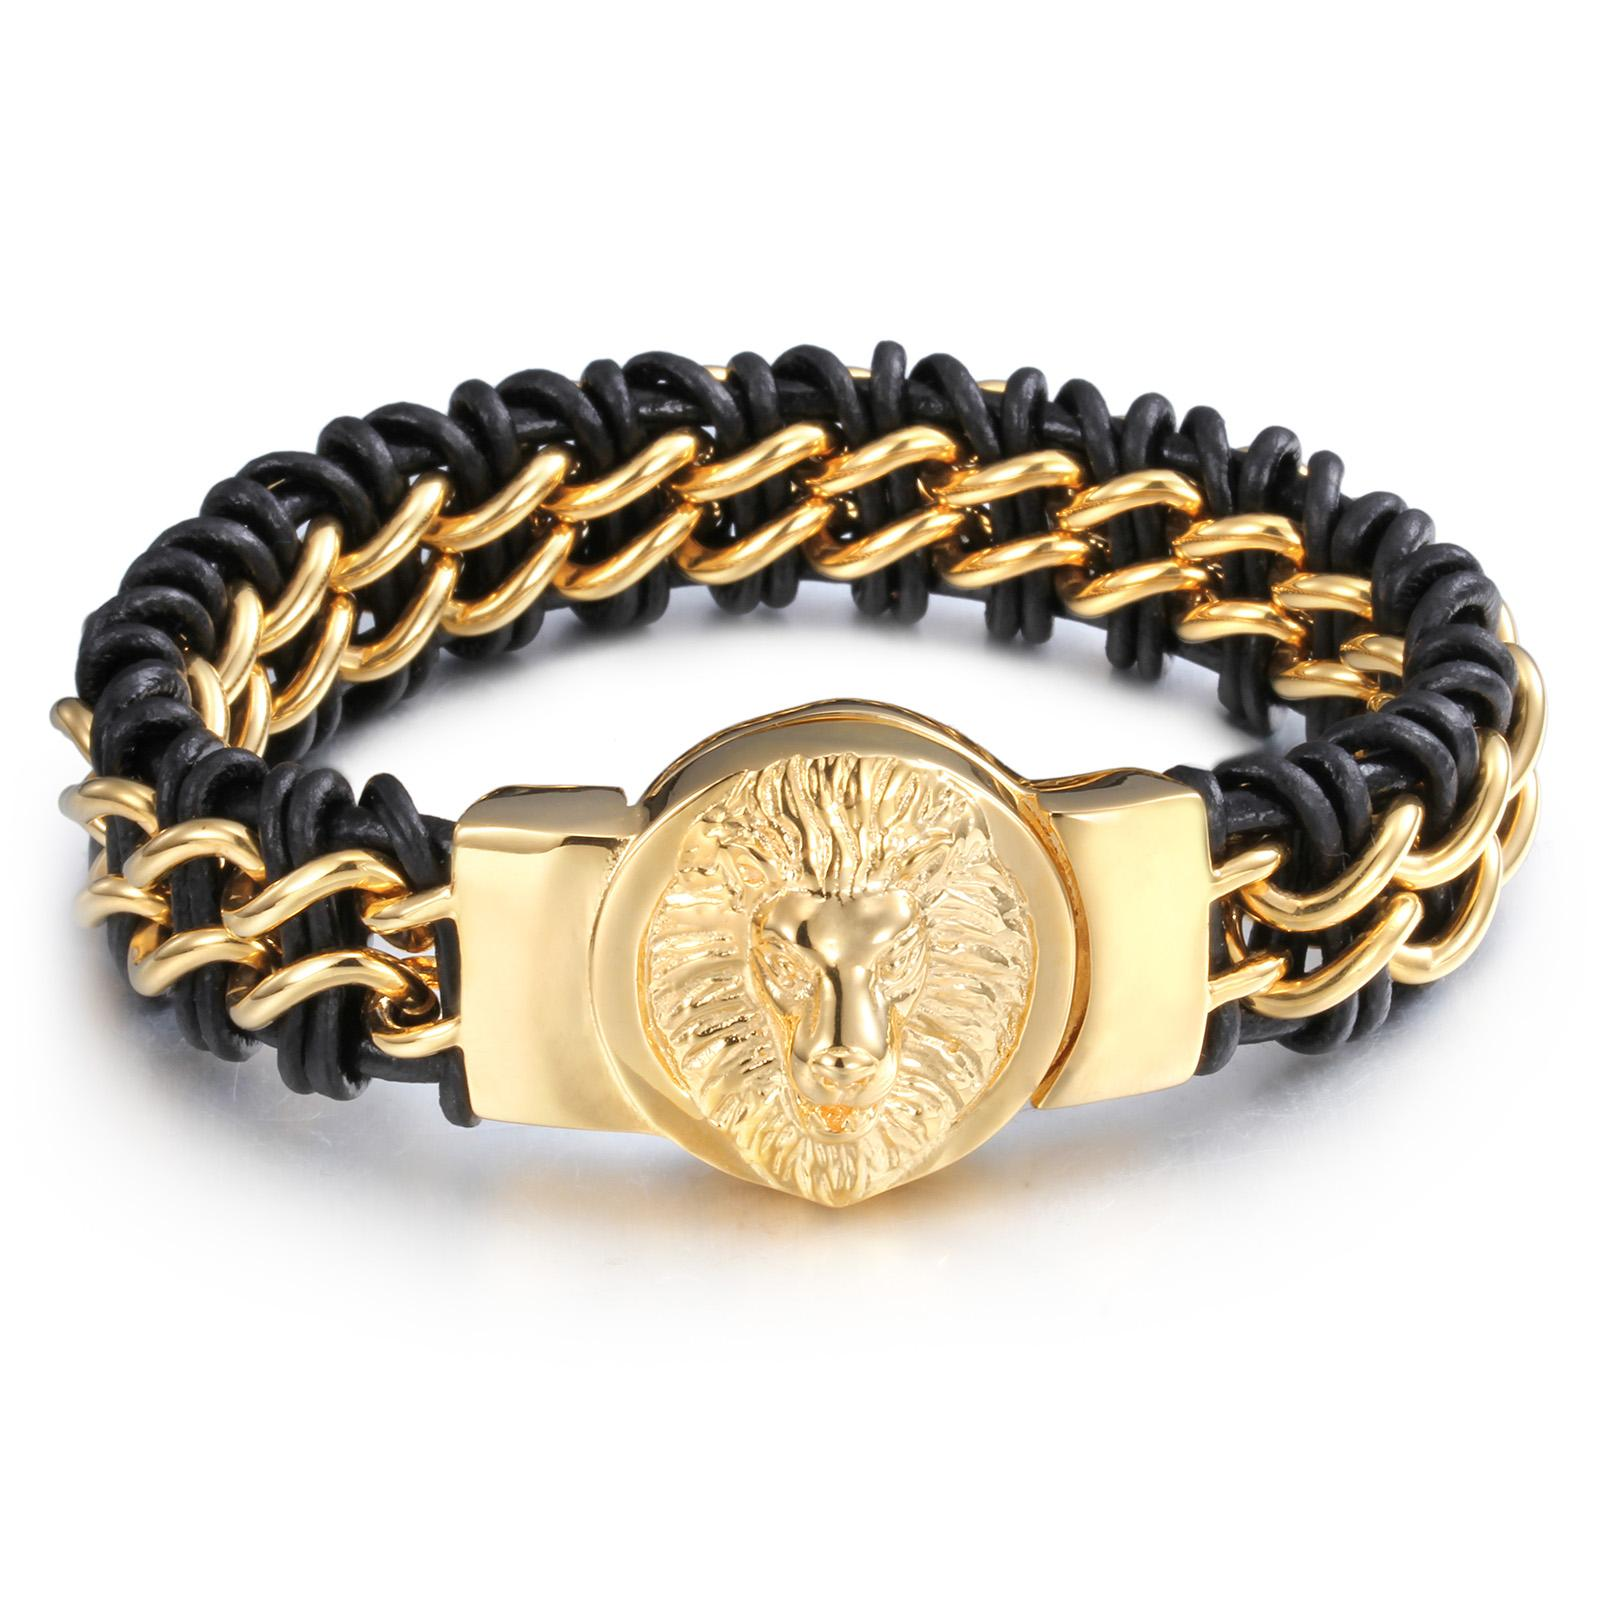 Fashion Handsome Jewelry Gothic Men's Braided Genuine Leather 316L Stainless Steel Biker Lion Head Chain Bracelet Bangle